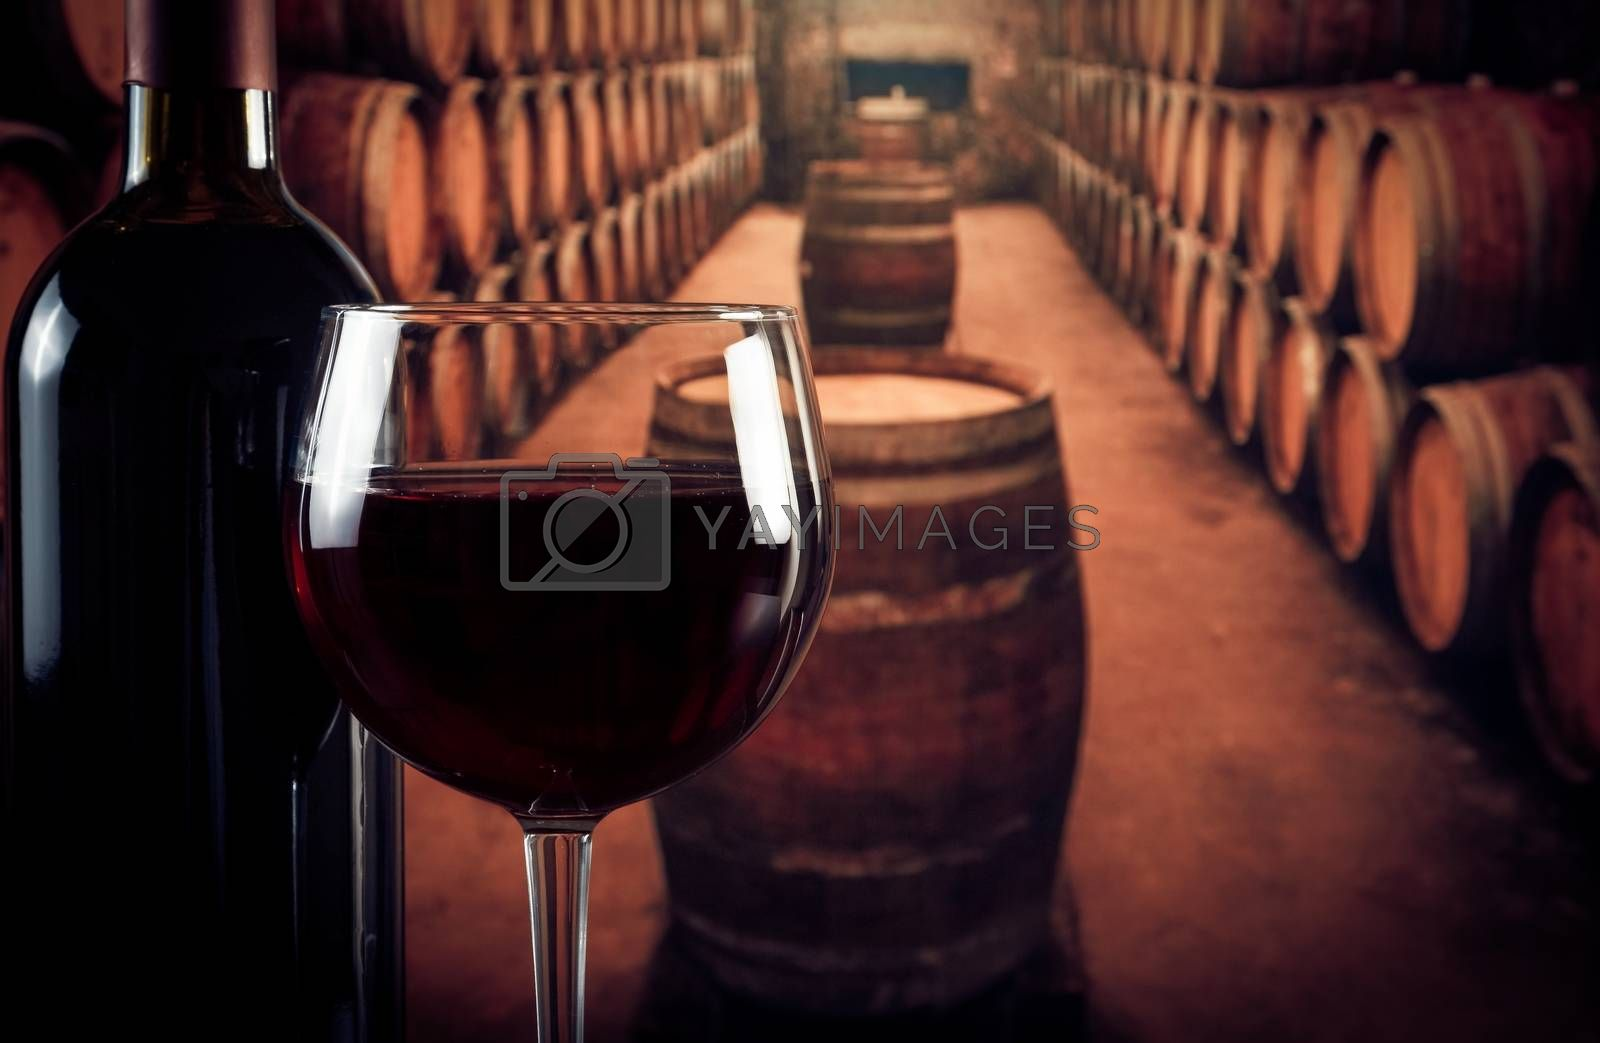 wine glass near bottle in old wine cellar with space for text by donfiore